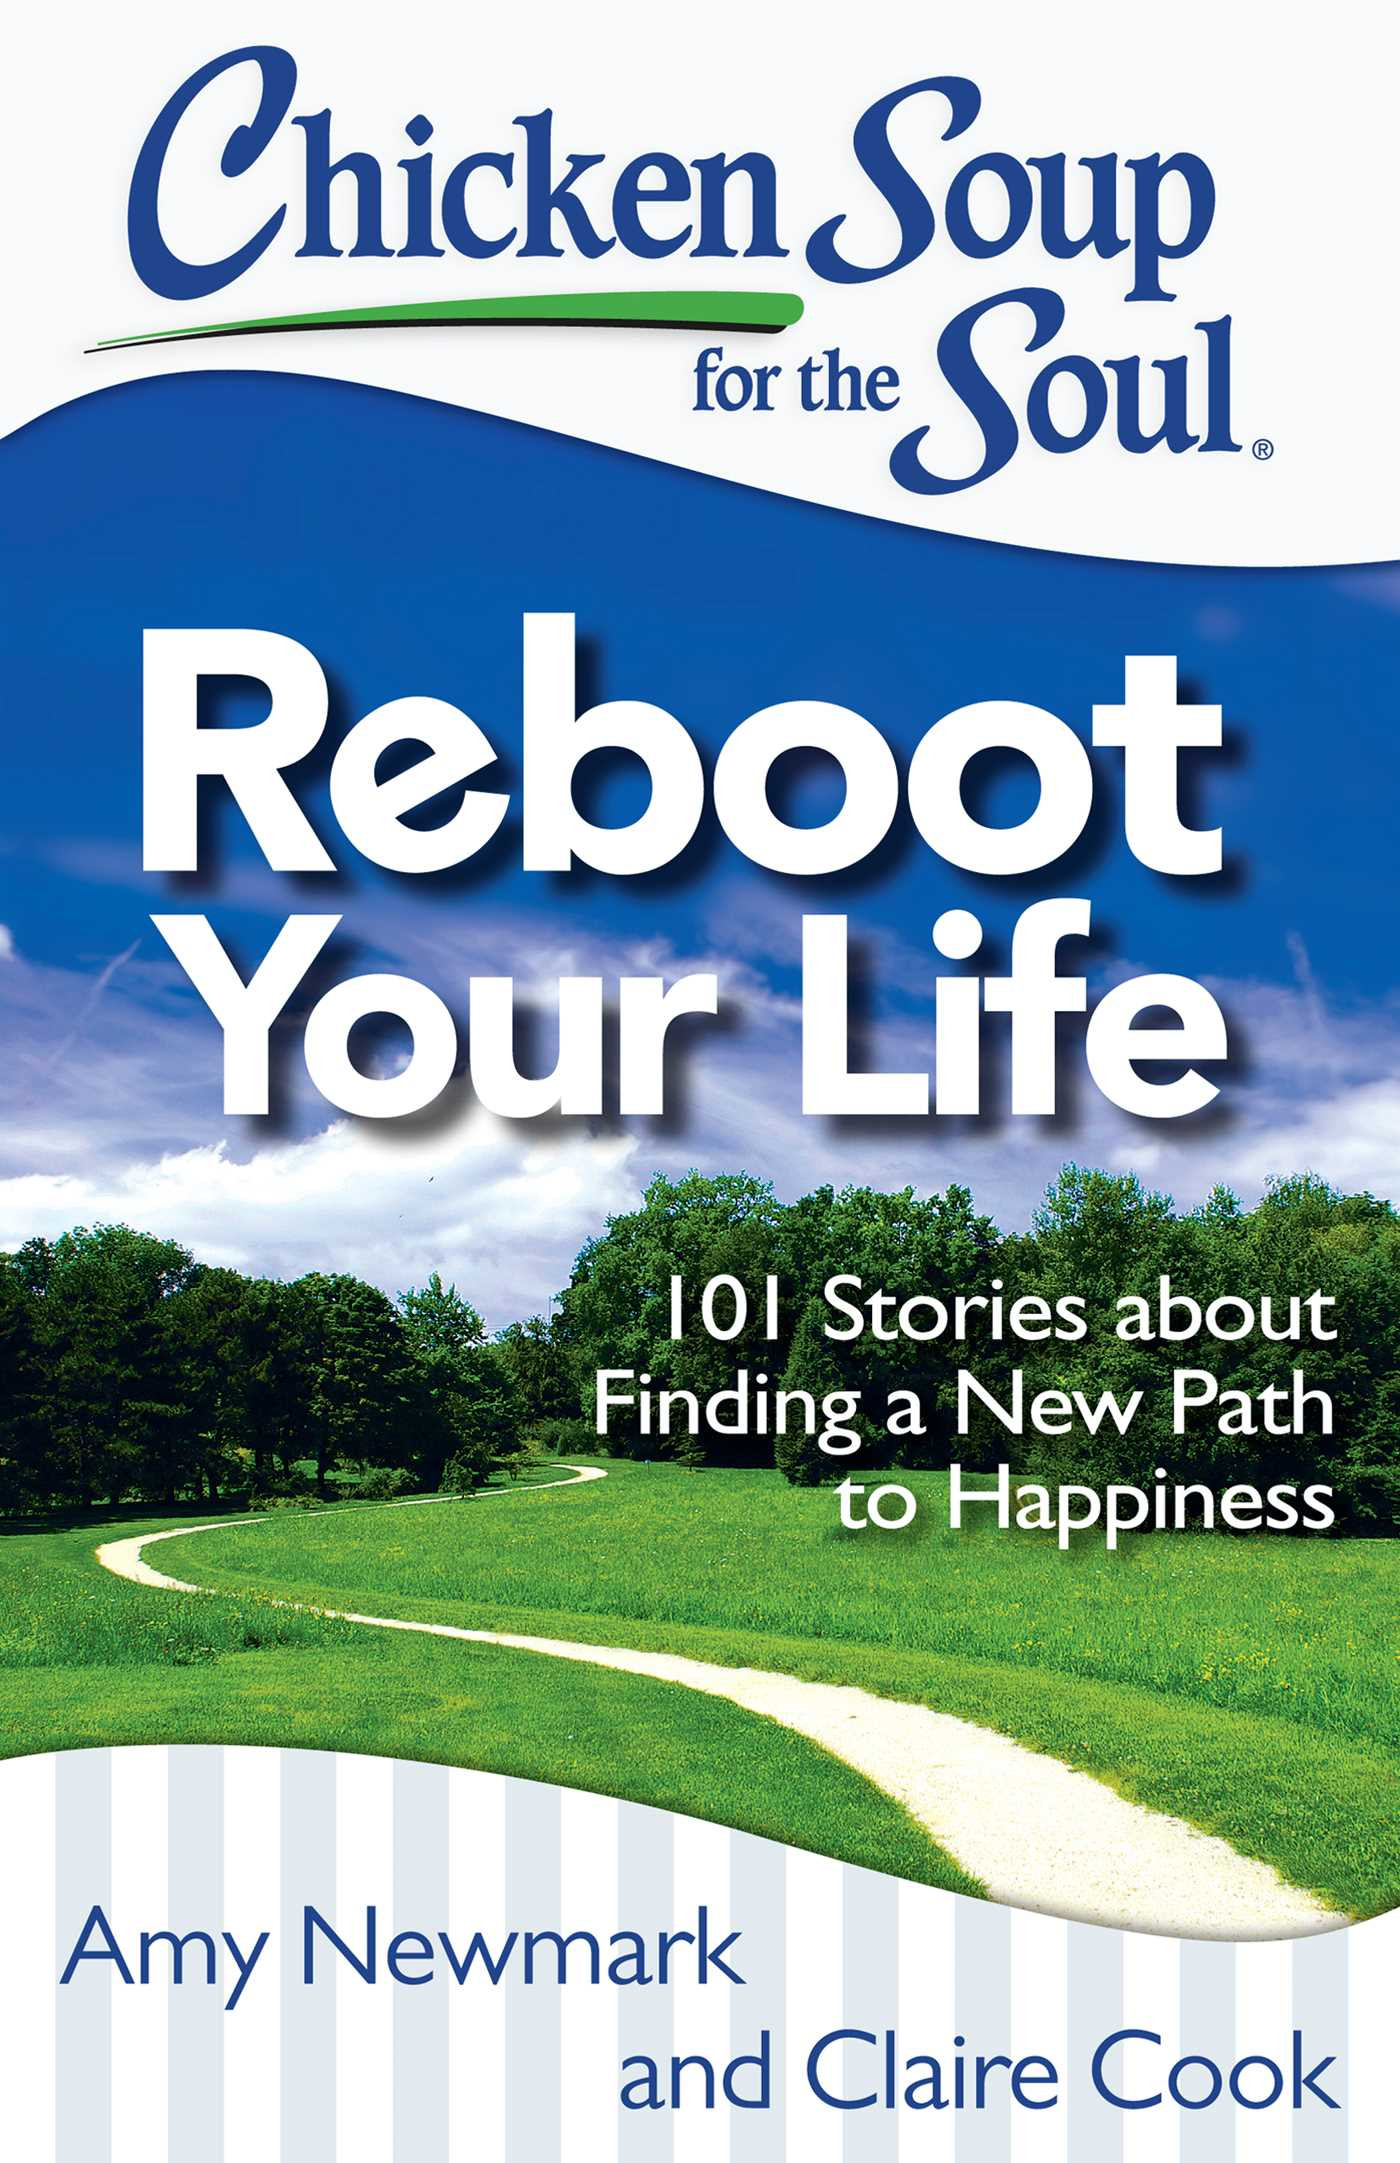 Chicken Soup For The Soul Books  Chicken Soup for the Soul Reboot Your Life